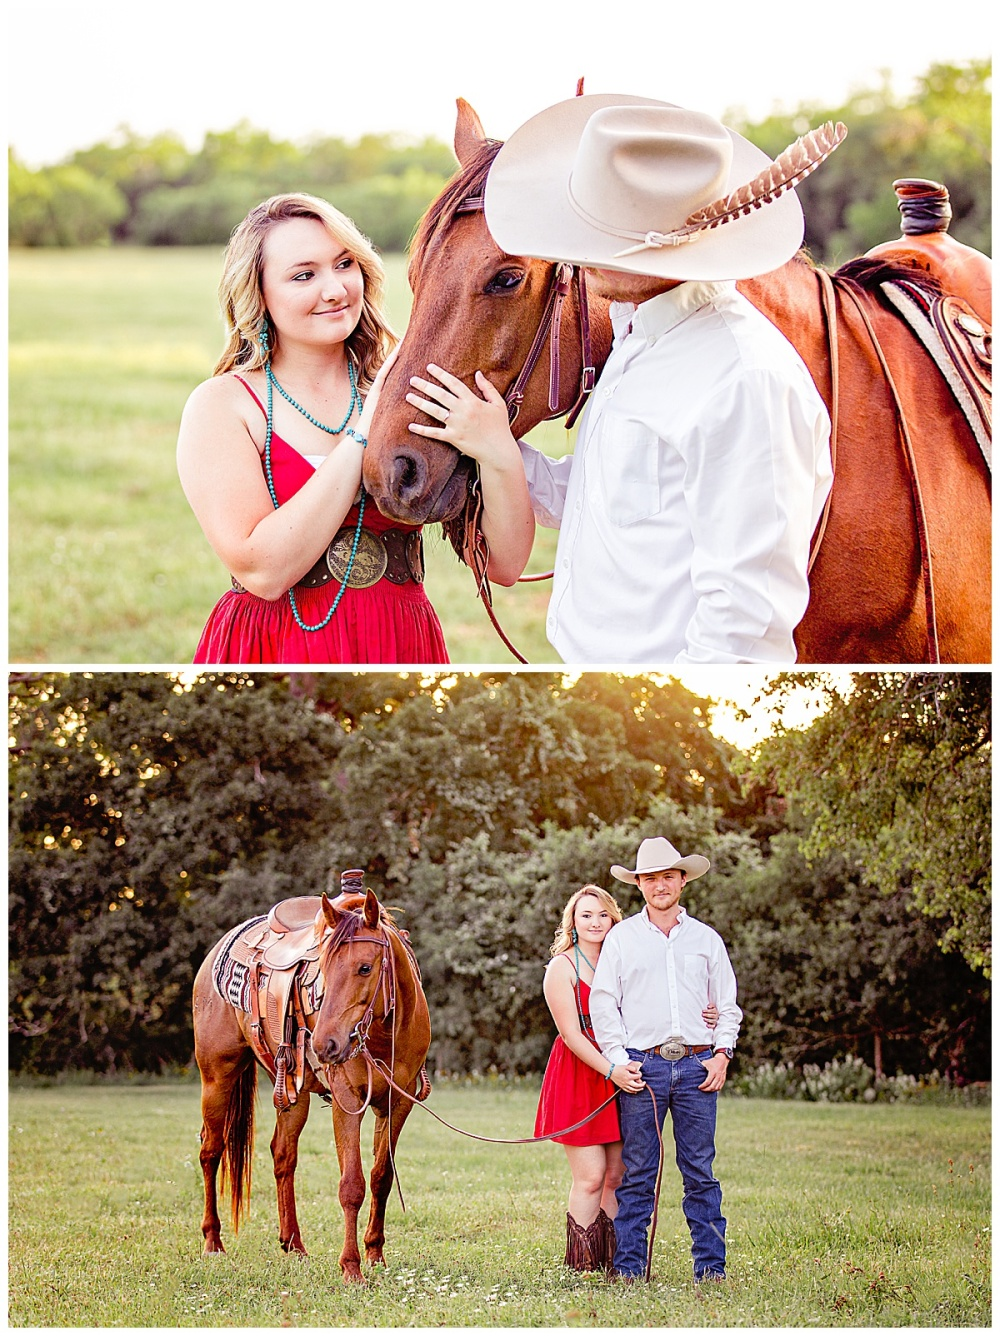 Rustic-Engagement-Session-Horse-Texas-Sunset-Carly-Barton-Photography_0002.jpg